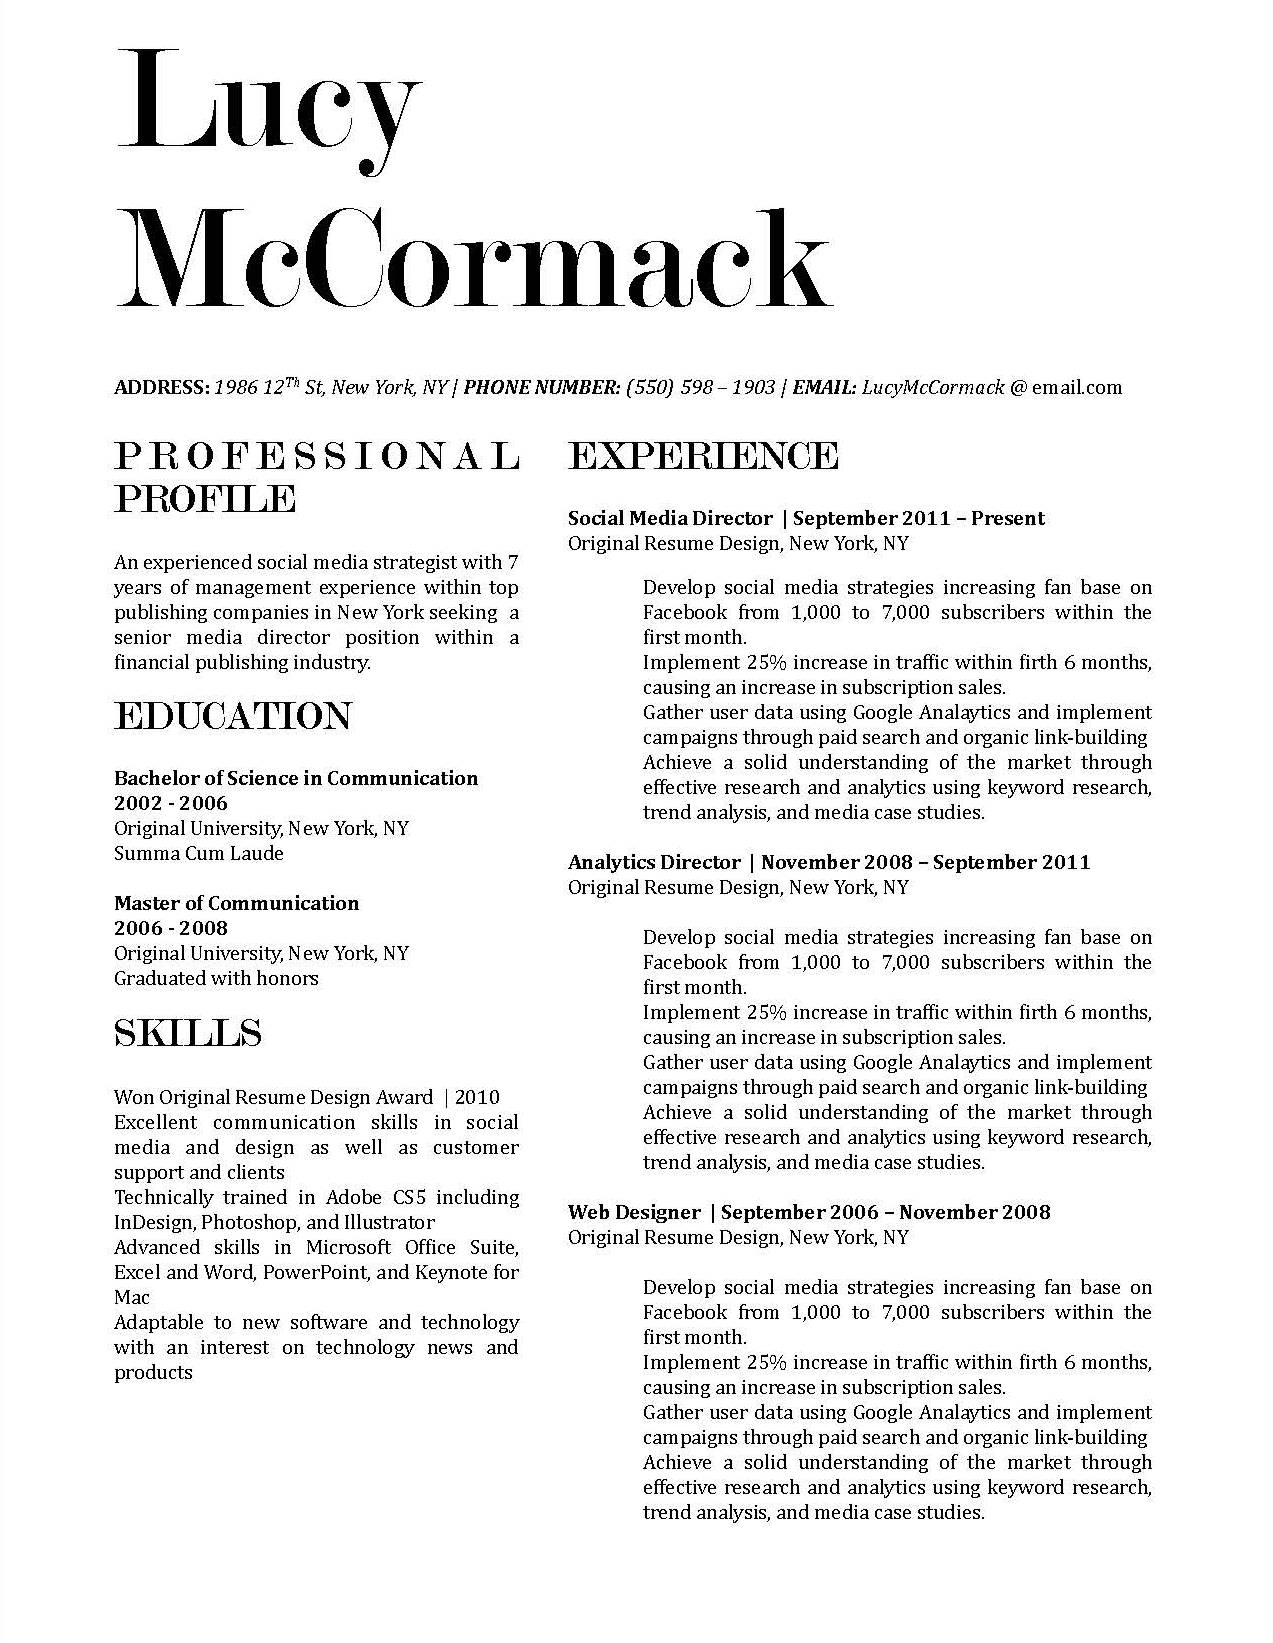 Lucy McCormack - Downloadable Resume Template for Microsoft Word and Apple Pages